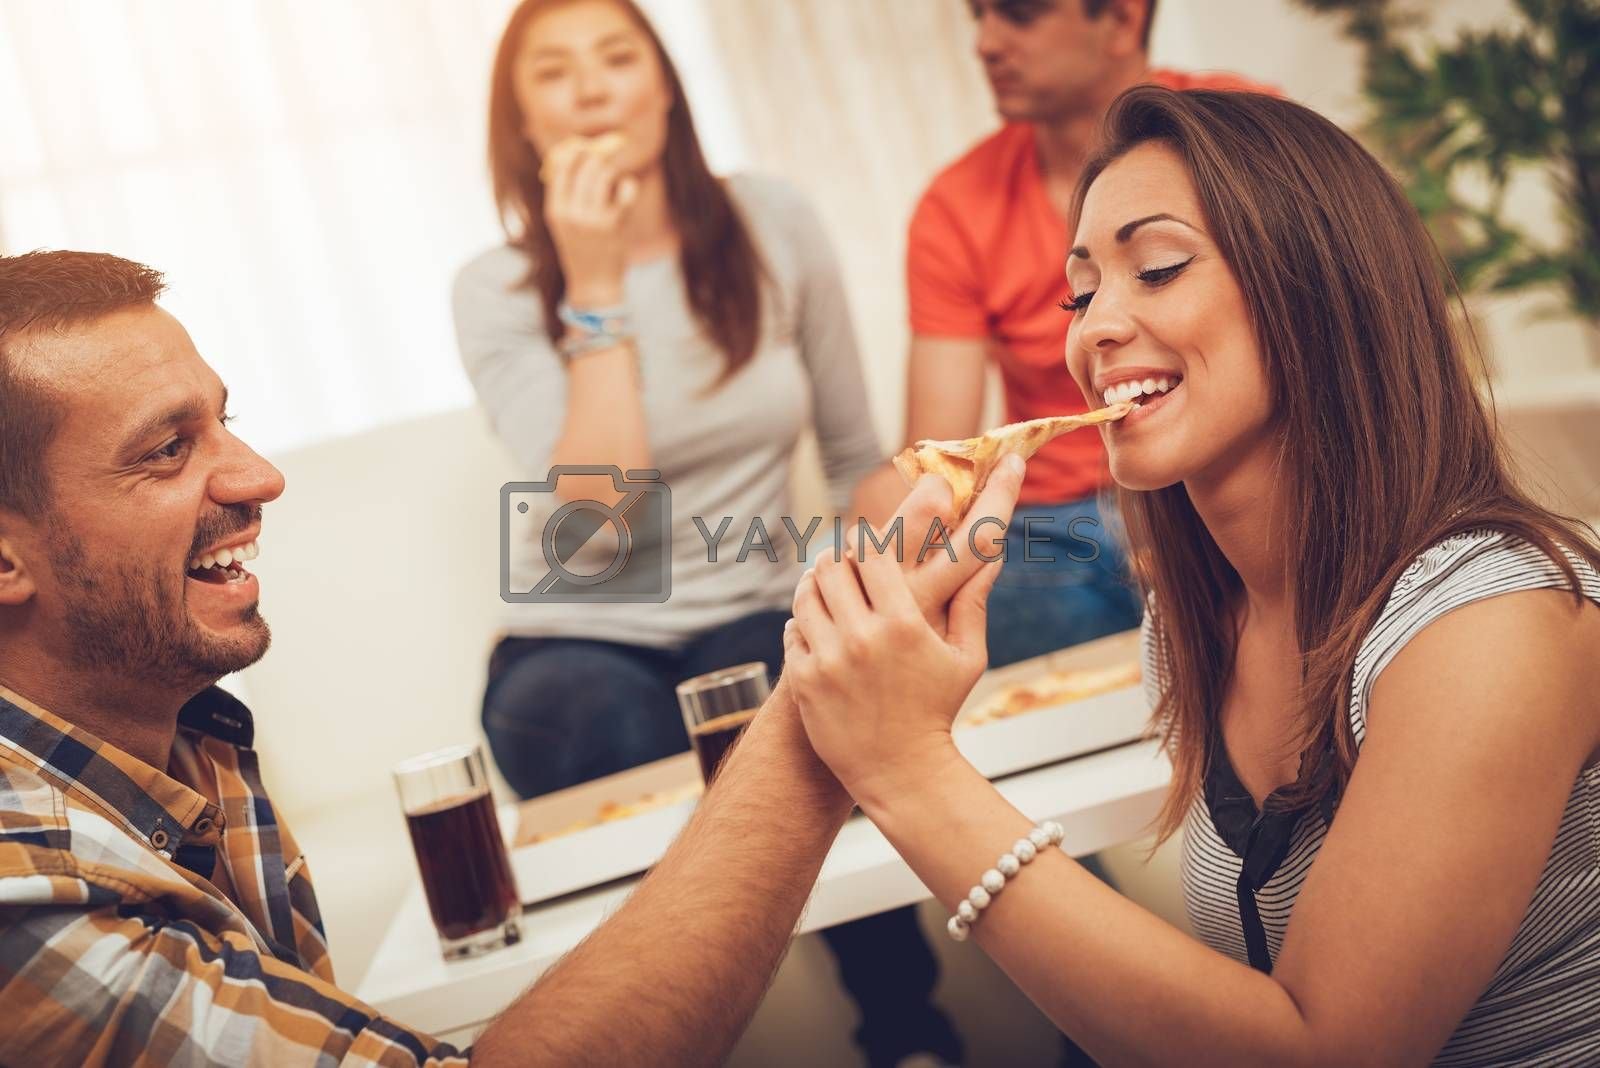 Beautiful young smiling couple sharing pizza and hanging out in an apartment.